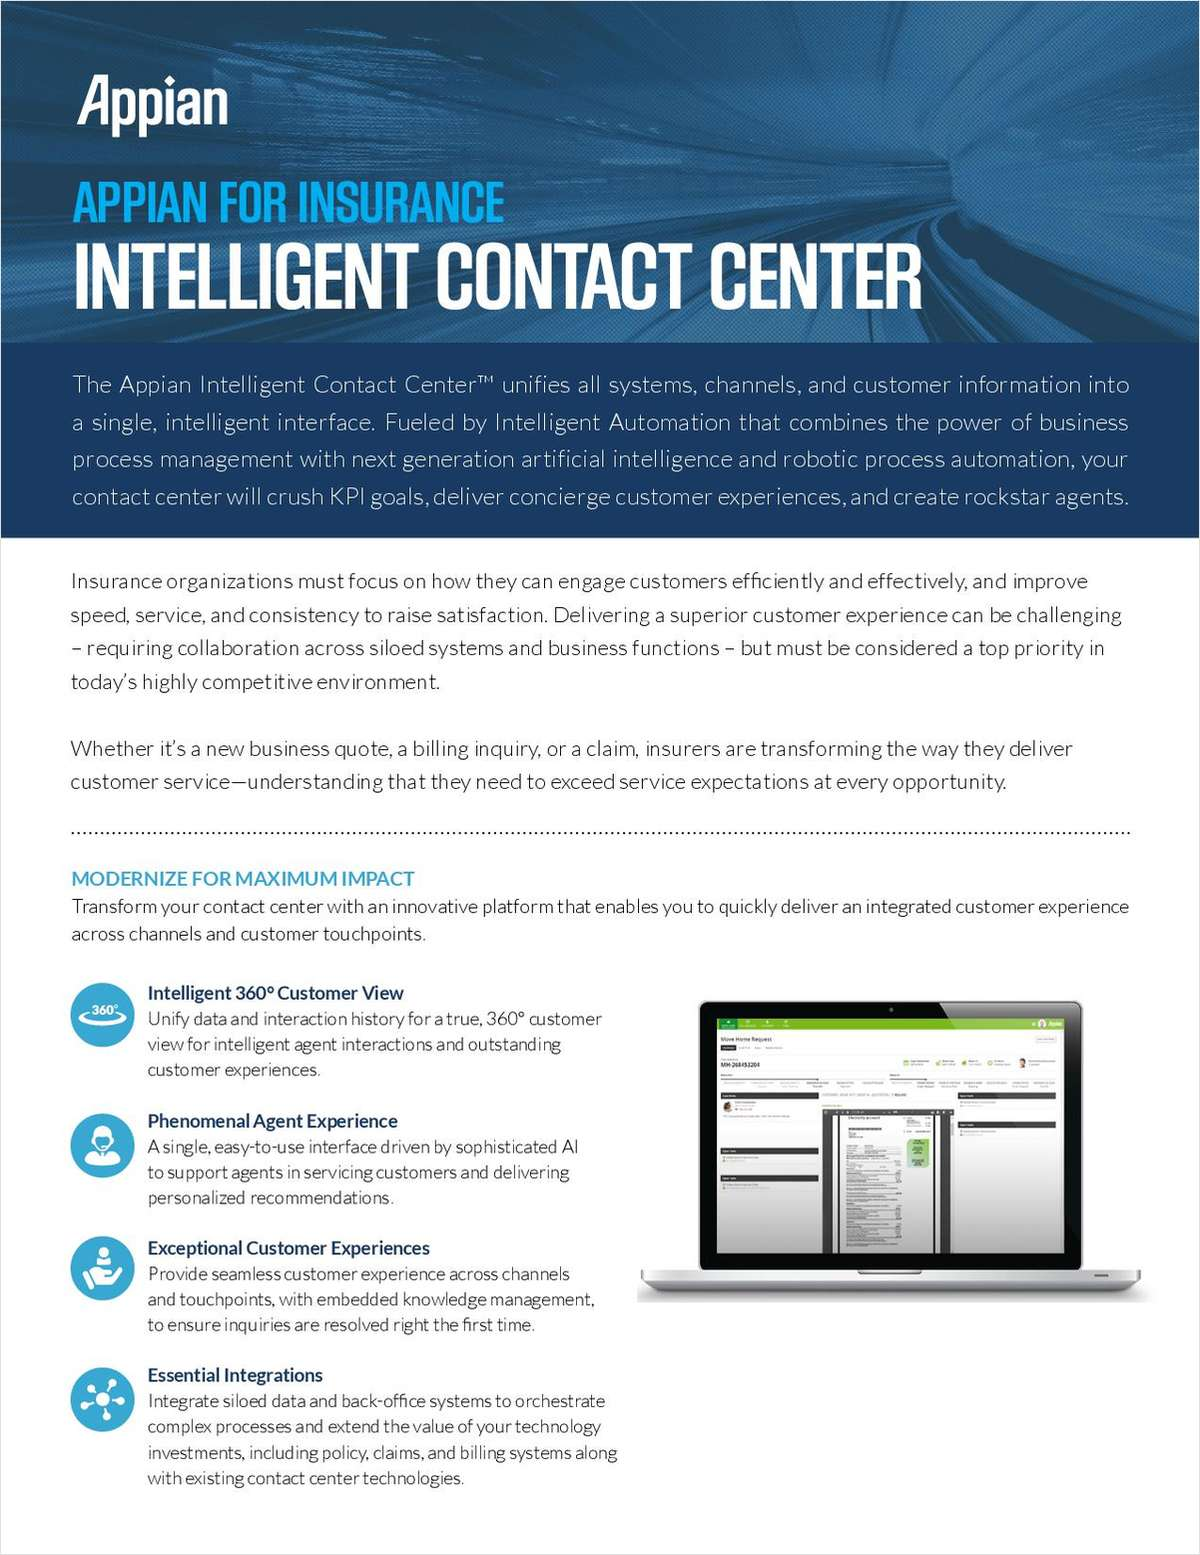 Appian for Insurance: Intelligent Contact Center